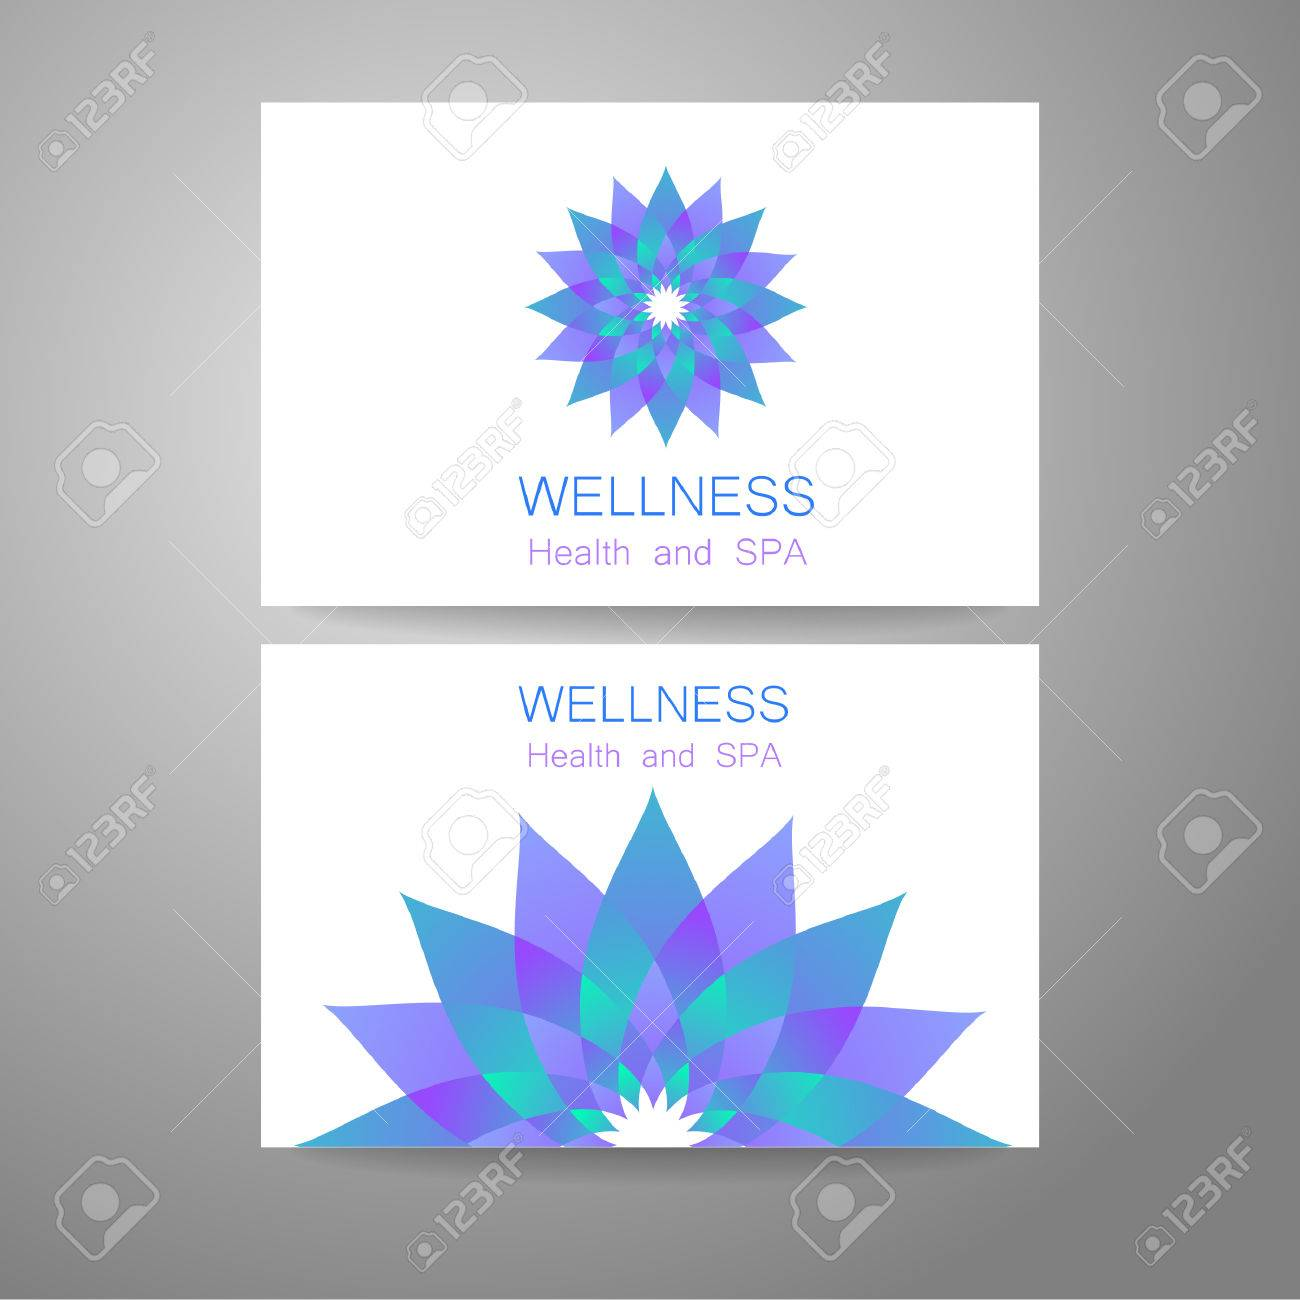 Wellness Logo Template Design Corporate Identity For Yoga Studios Royalty Free Cliparts Vectors And Stock Illustration Image 45483214